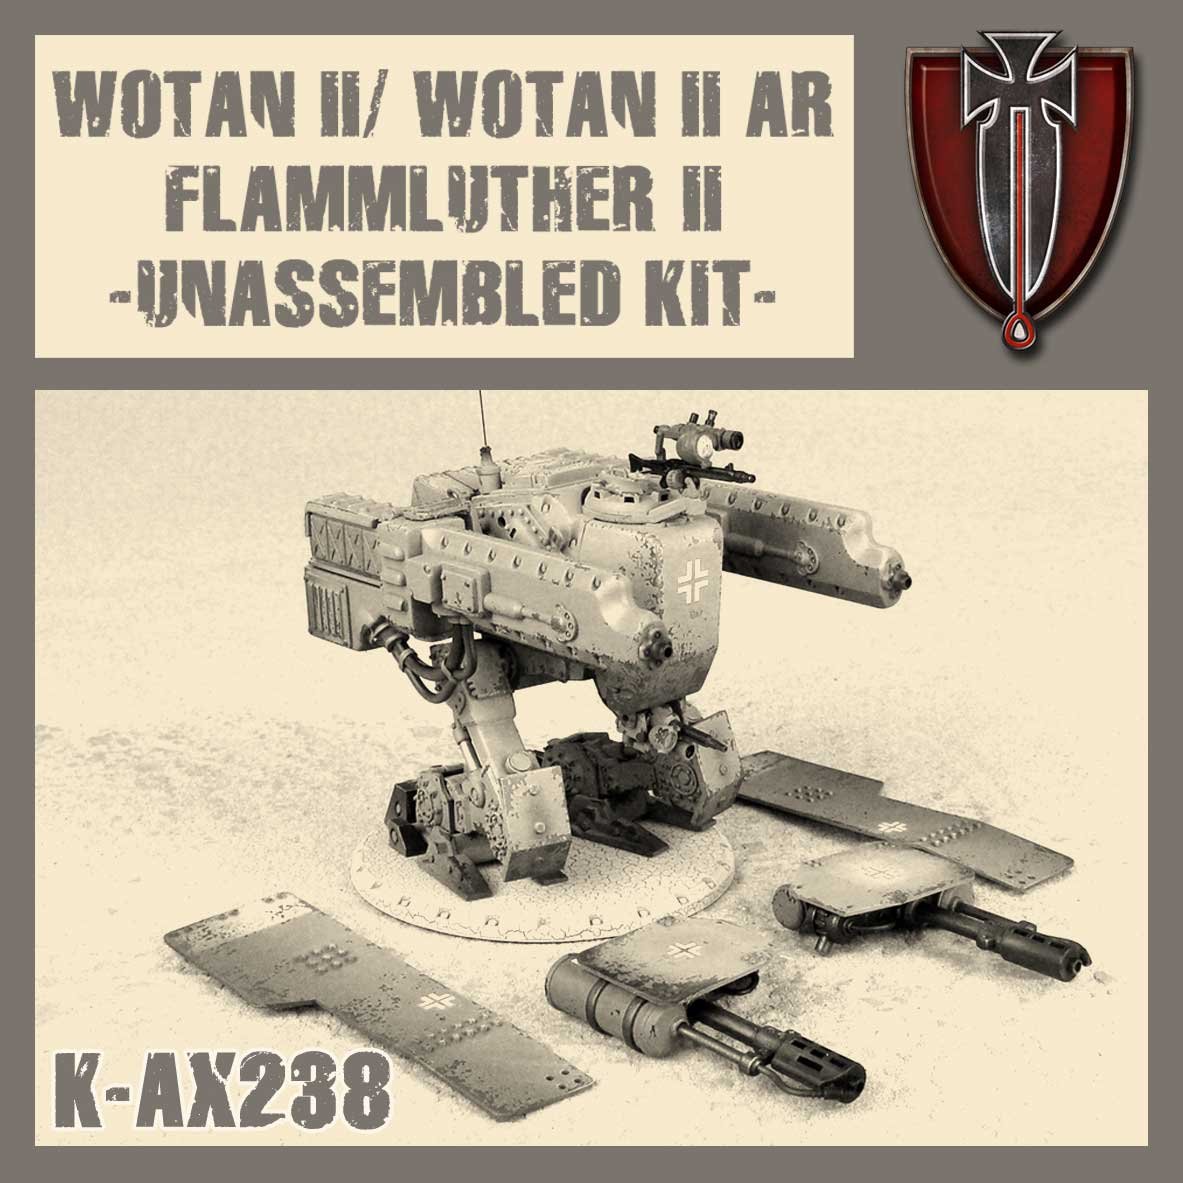 Flamm-Luther II / Wotan II / Wotan II AR Kit